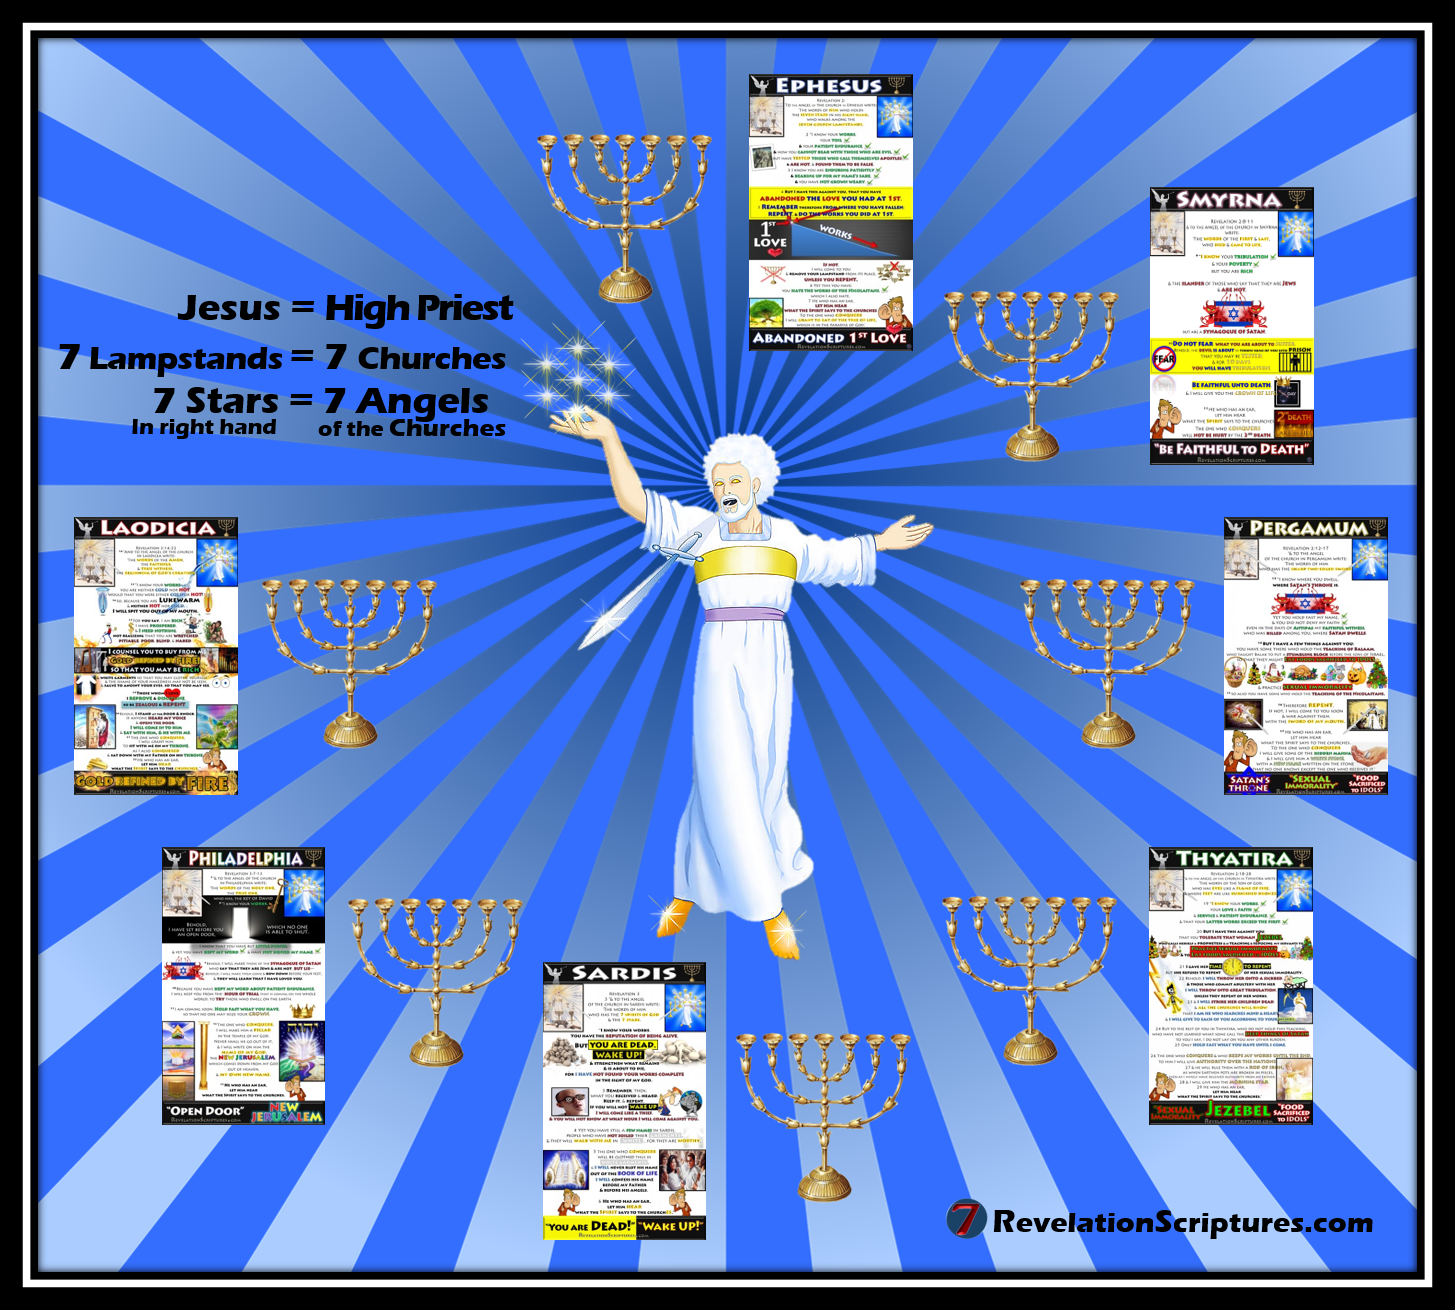 Jesus,Yeshua,High Priest,Heaven,Midst,Seven,Lampstands,Seven Stars,Seven Churches,Sword out of Mouth,Ephesus,Smyrna,Laodicia,Pergamum,Philadelphia,Sardis,Thyatira,Laodicia,Seven Candlesticks,Book of Revelation,Chapter 1 2 & 3,Revelation Chapter 1,right hand